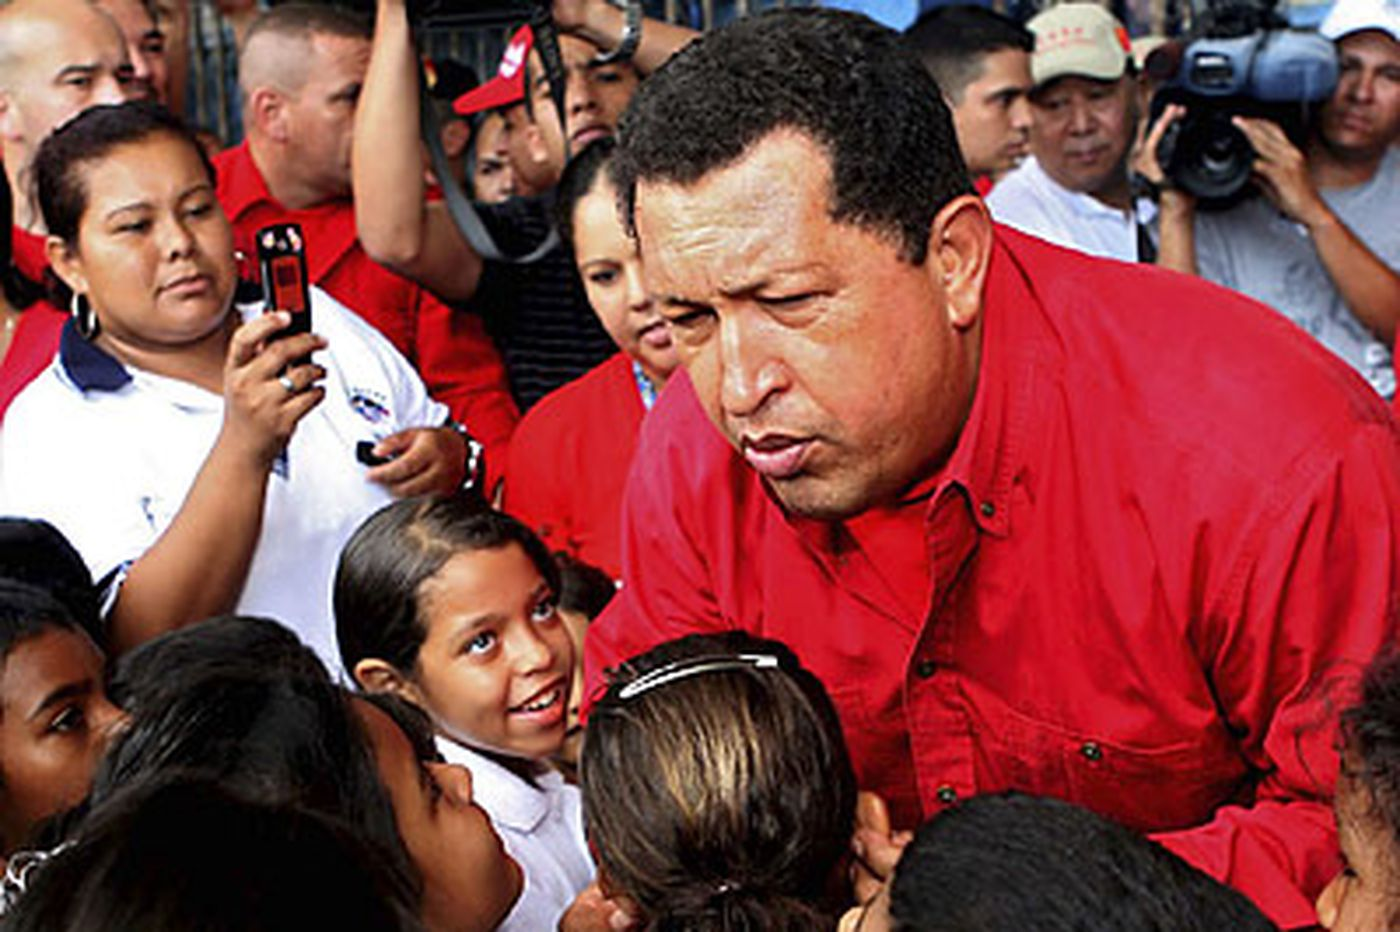 The Elephant in the Room: It's time to take on Chavez